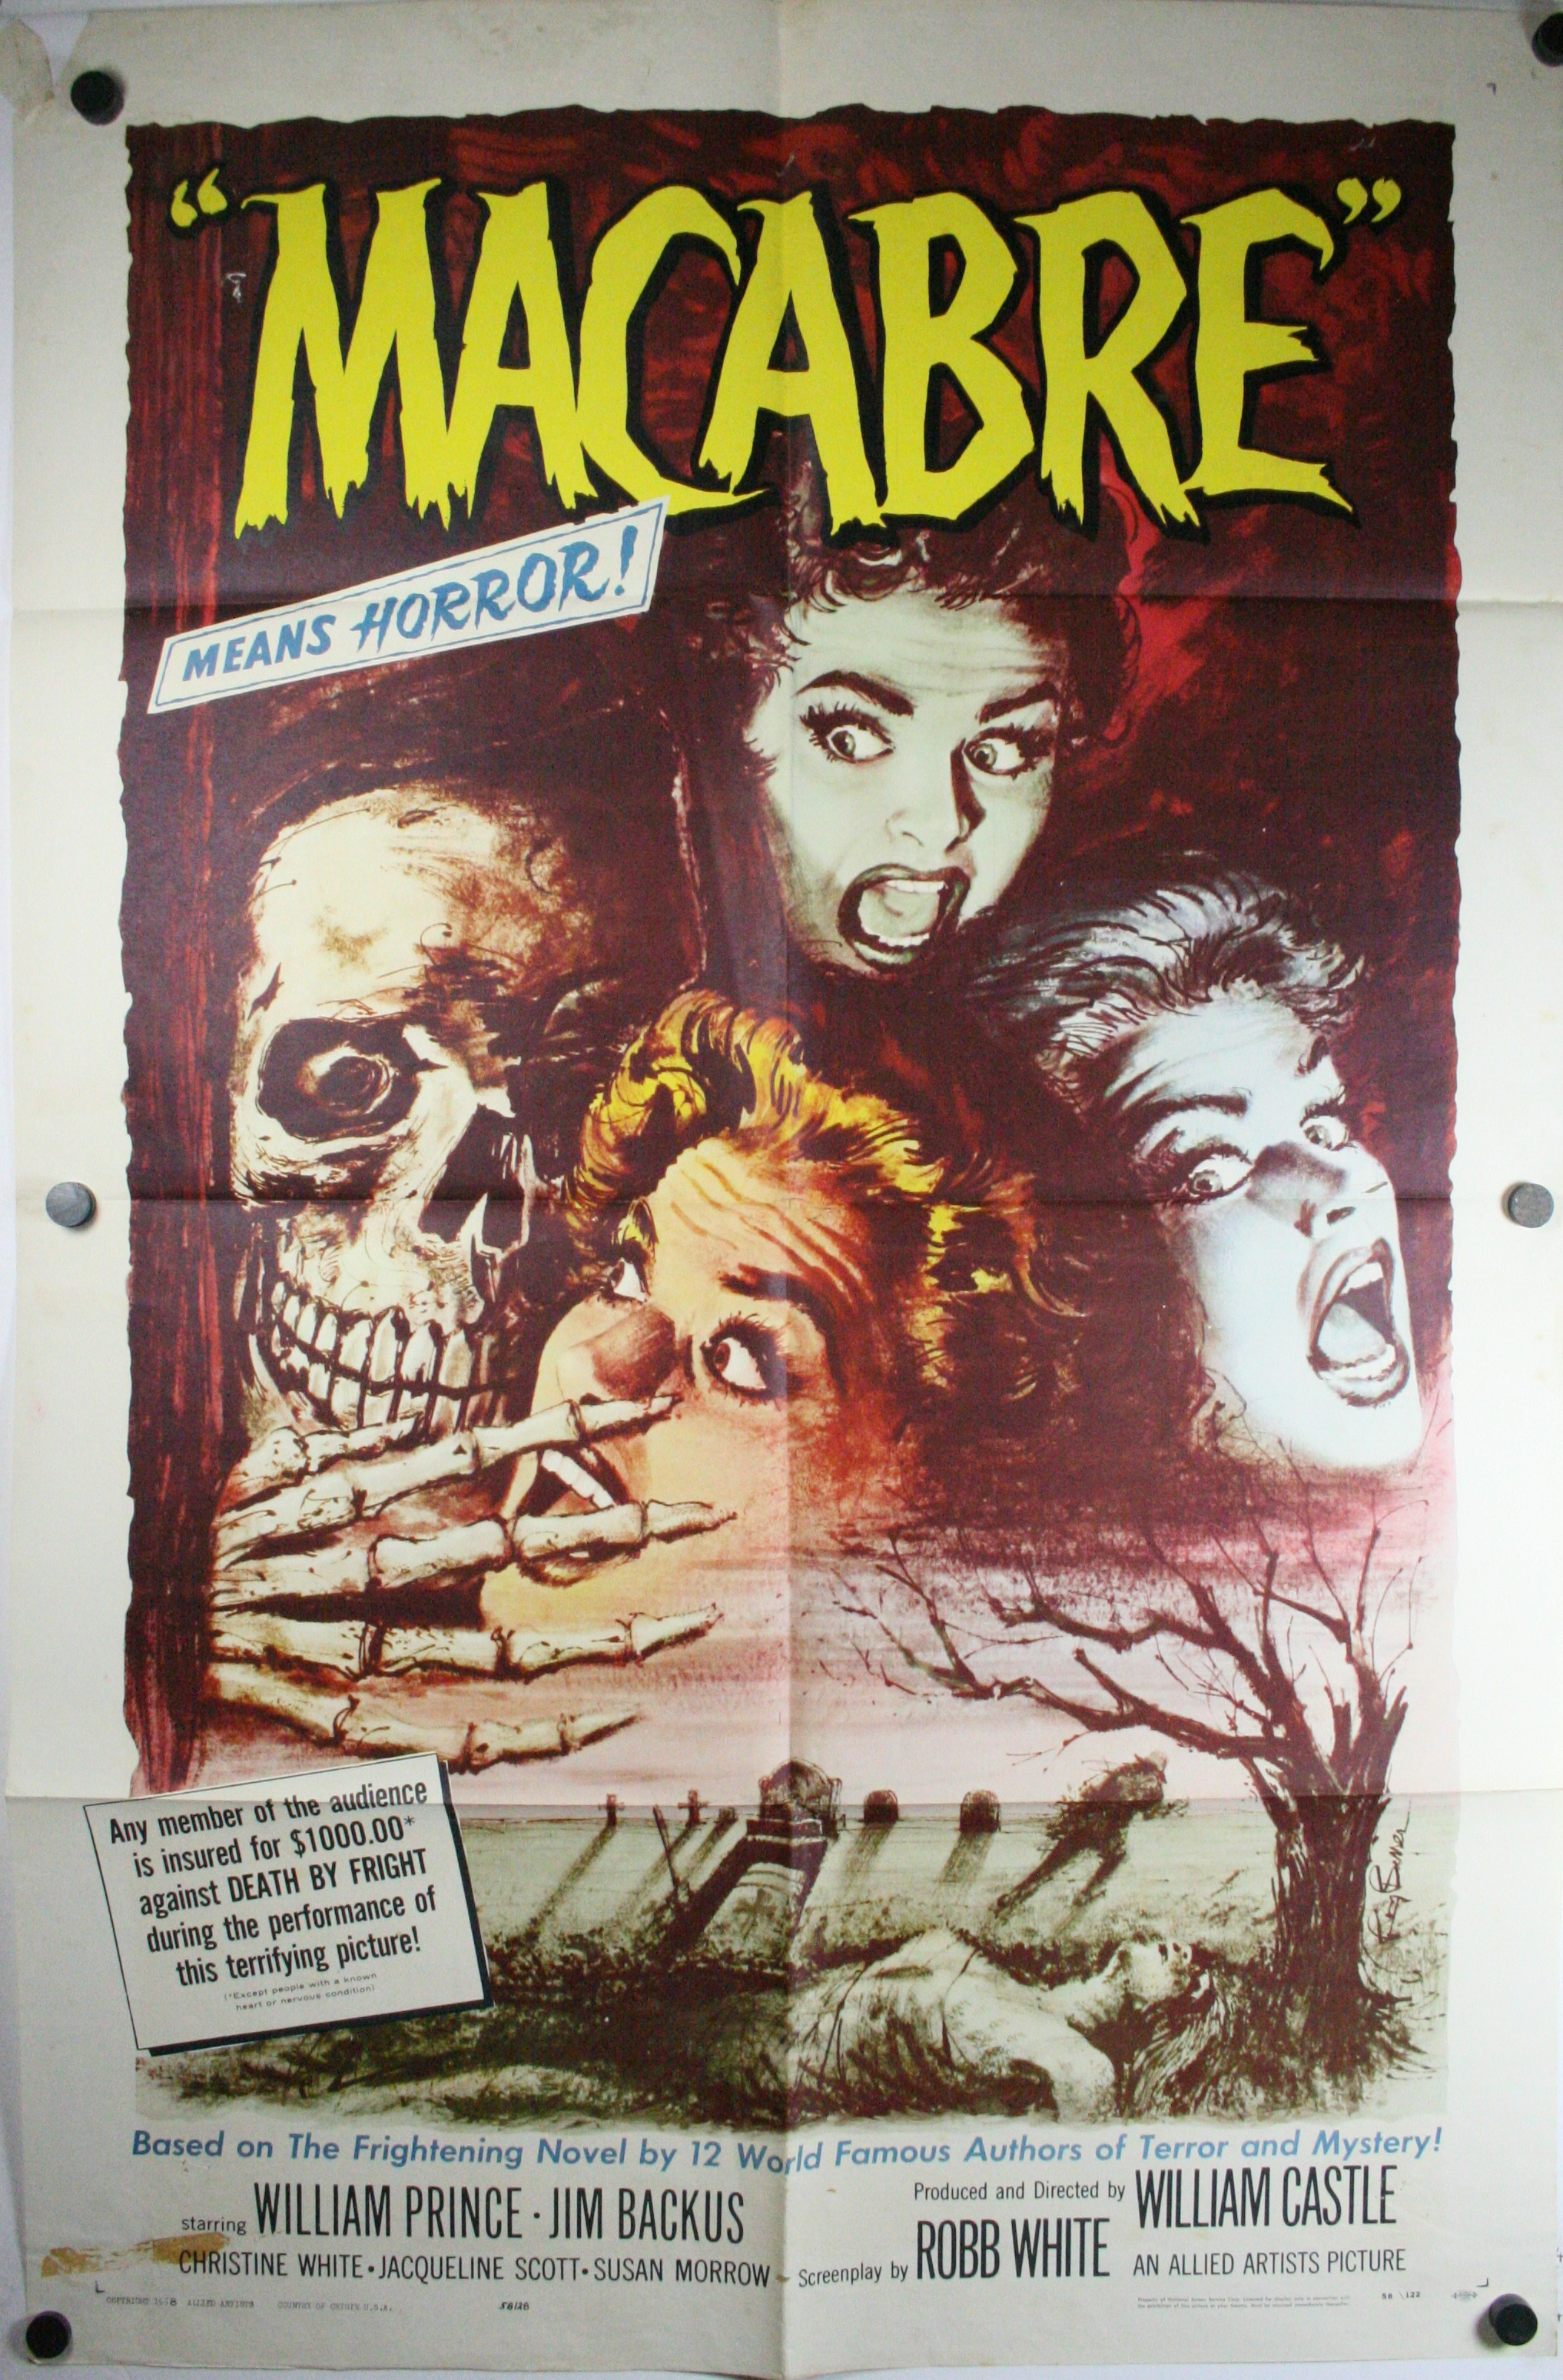 MACABRE, Original Horror US 1 sheet Movie Theater Poster ...